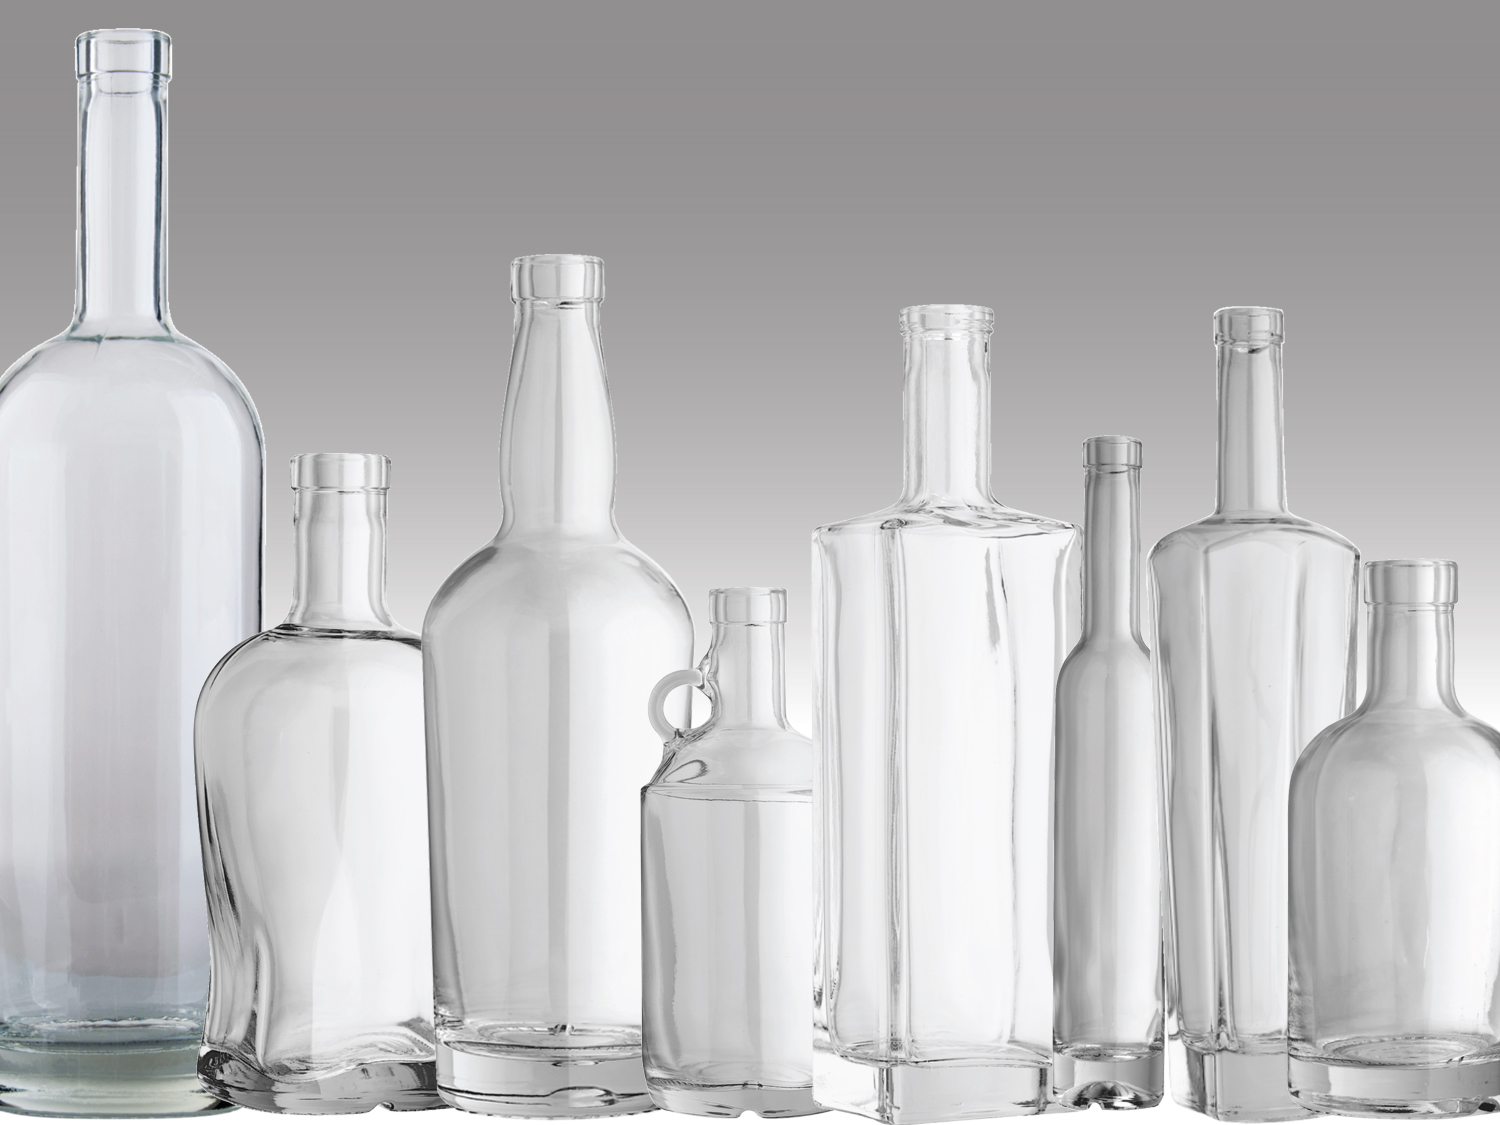 AAC SPIRITS CONTAINERS